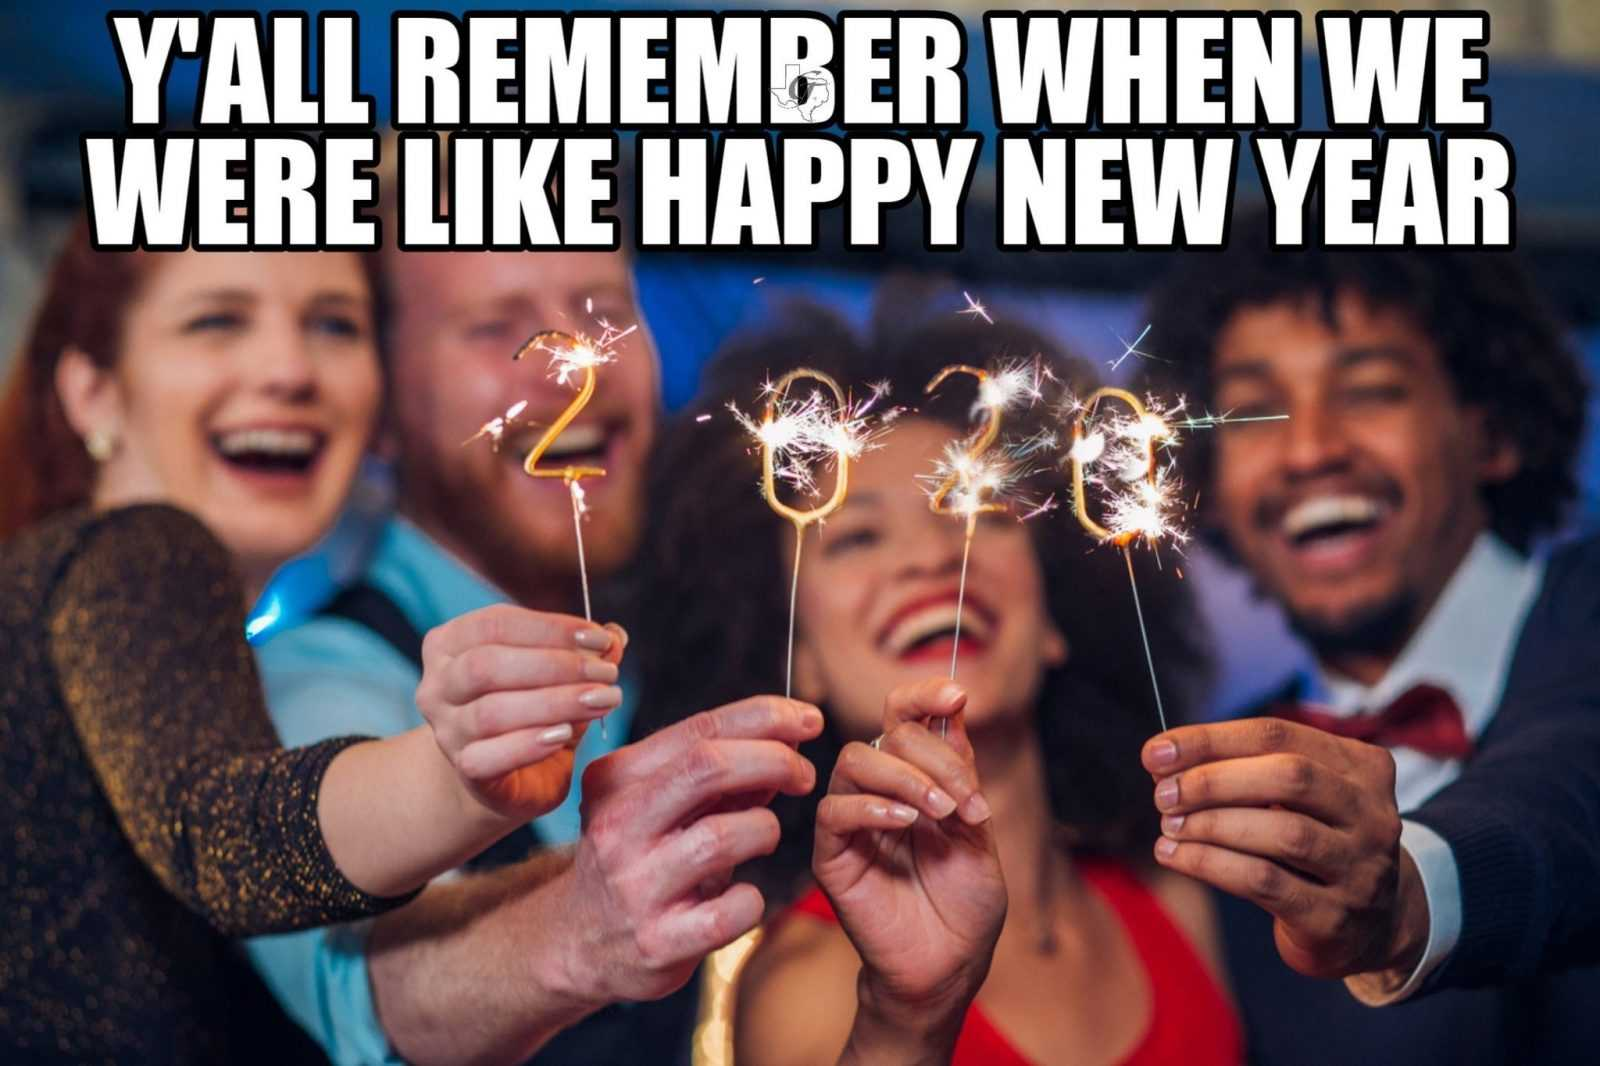 Funny New Years Memes - 2020